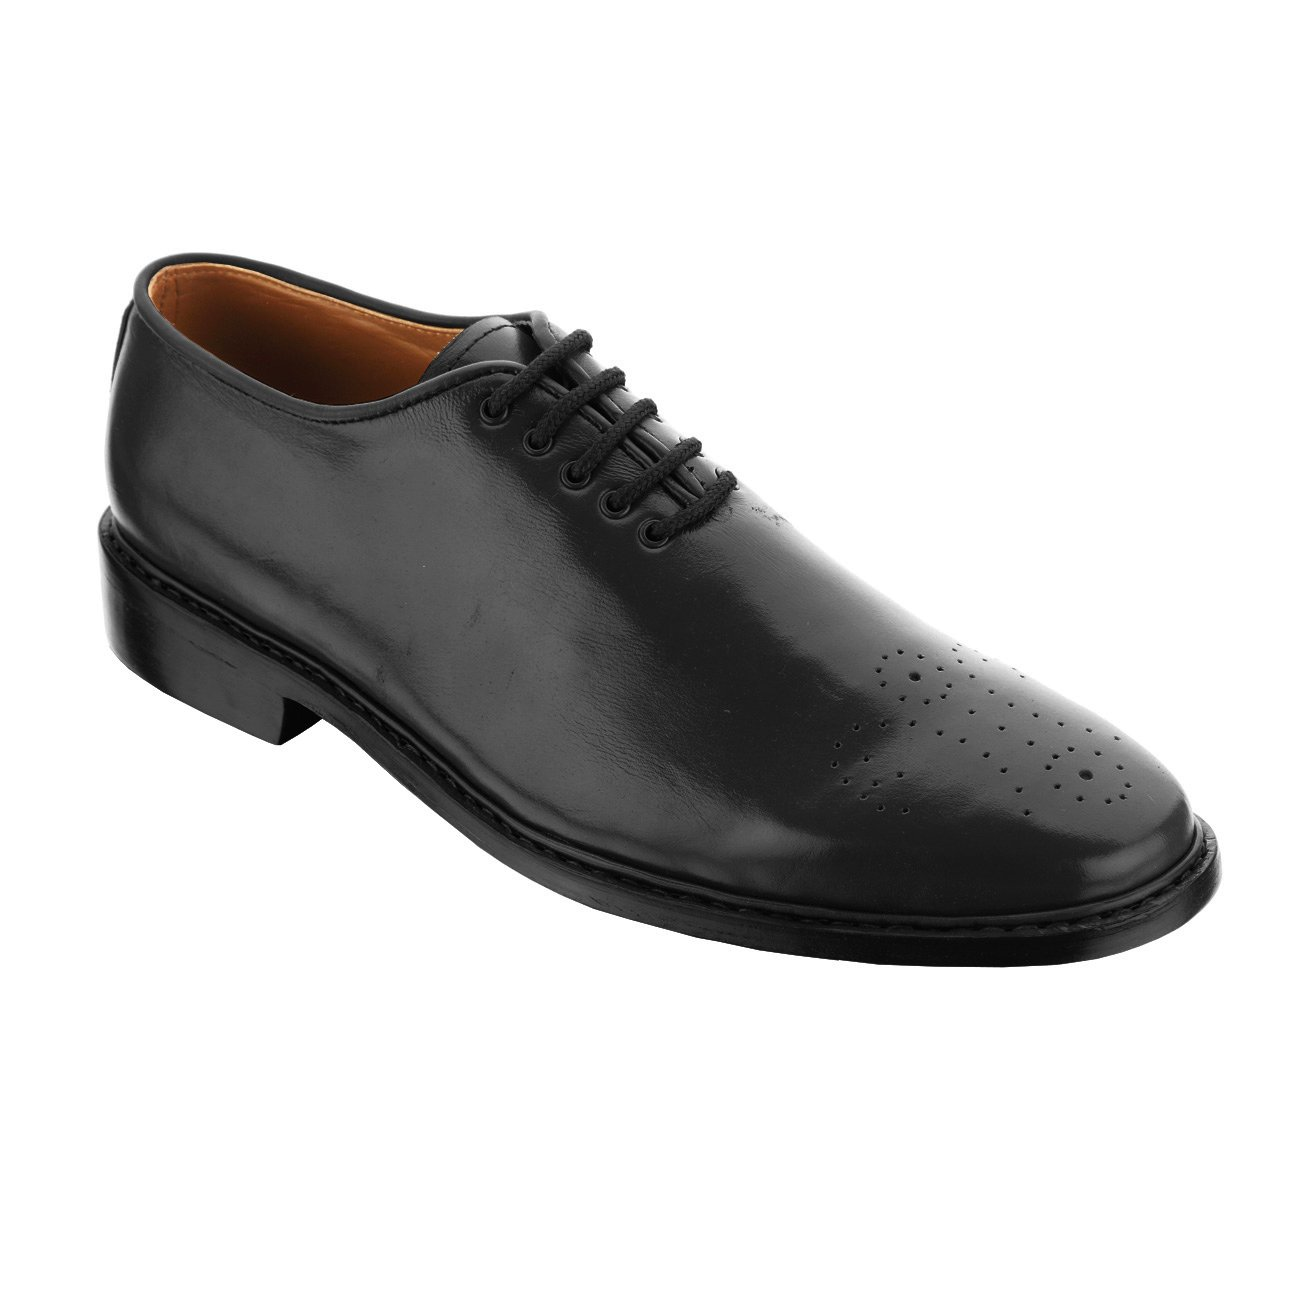 Handmade Damen Frost Presidente Mens Lace-up Leather Dress Shoes, Color Black, Size US12